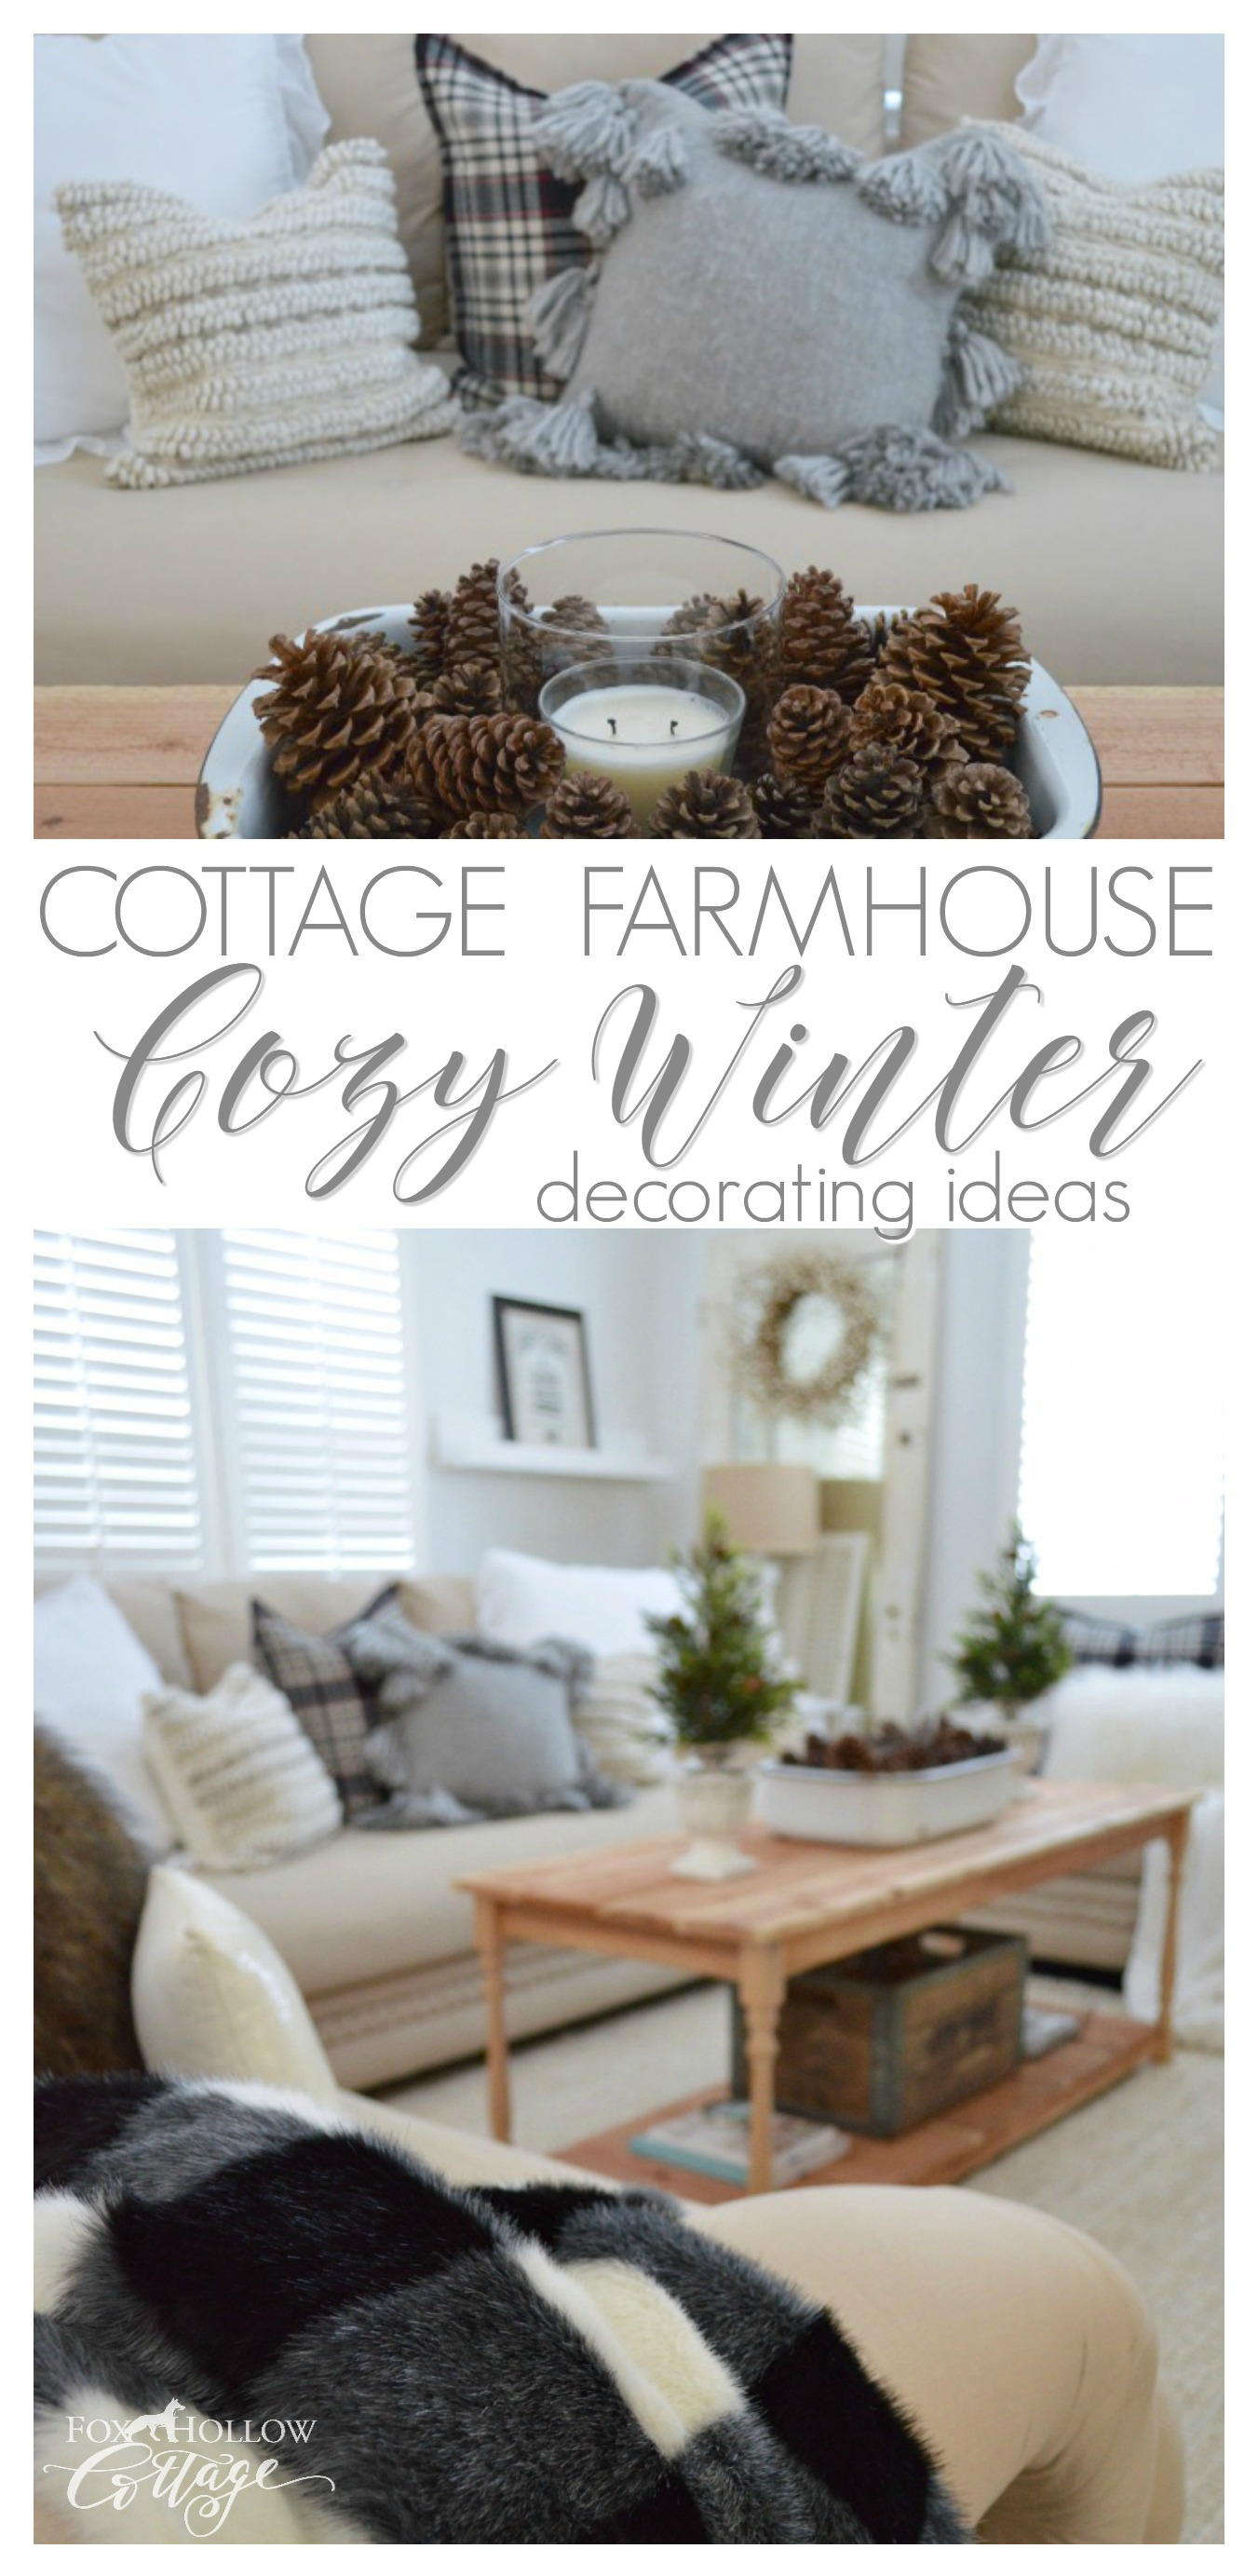 Cozy Cottage Farmhouse Winter Decorating Ideas - Fox Hollow Cottage